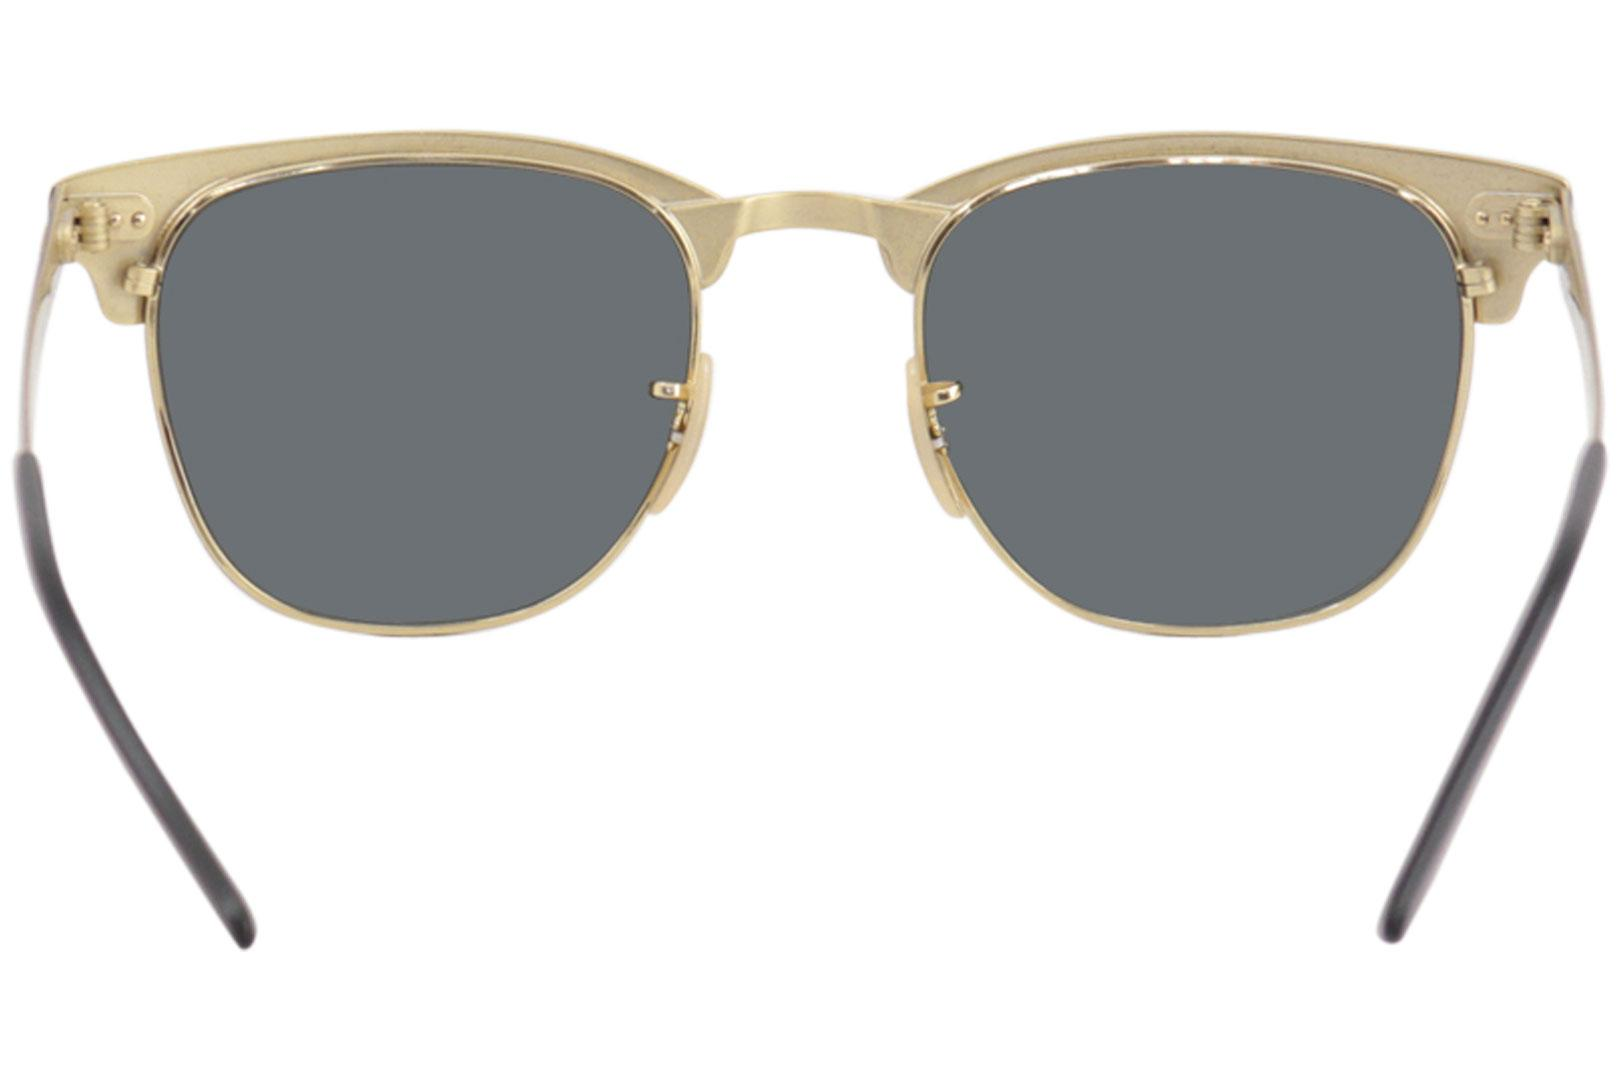 ed02d14cd3 Ray Ban Clubmaster Metal RB3716 RB 3716 Square RayBan Polarized Sunglasses  by Ray Ban